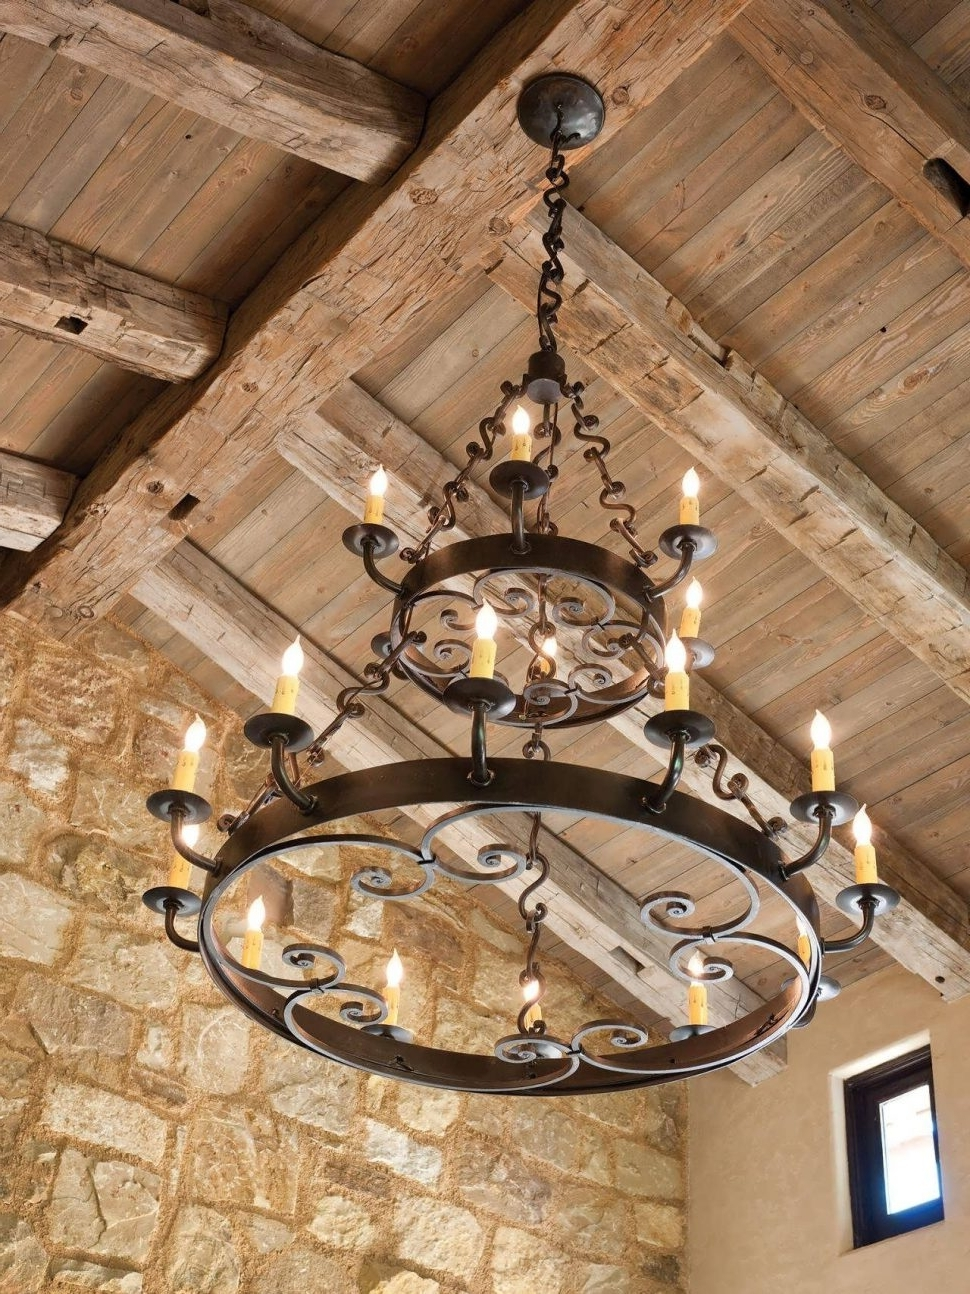 Widely Used Large Iron Chandeliers Pertaining To Chandeliers Design : Wonderful Rustic Dining Room Light Fixtures (View 10 of 20)